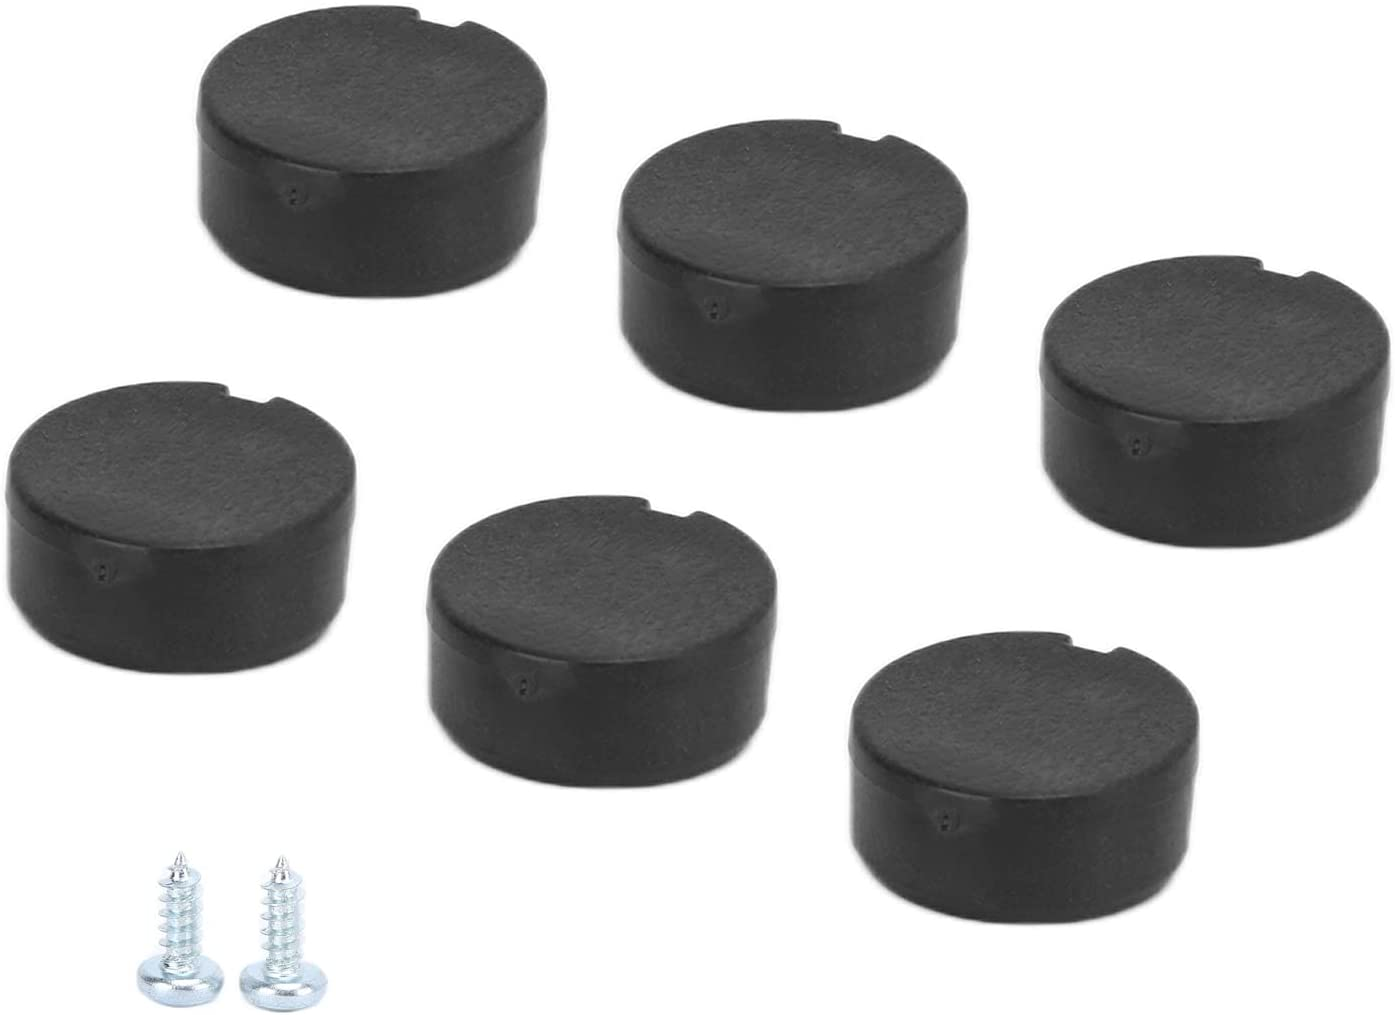 Yctze wholesale Threshold Caps Covers Raleigh Mall 66788900 for Replacement Accessory T